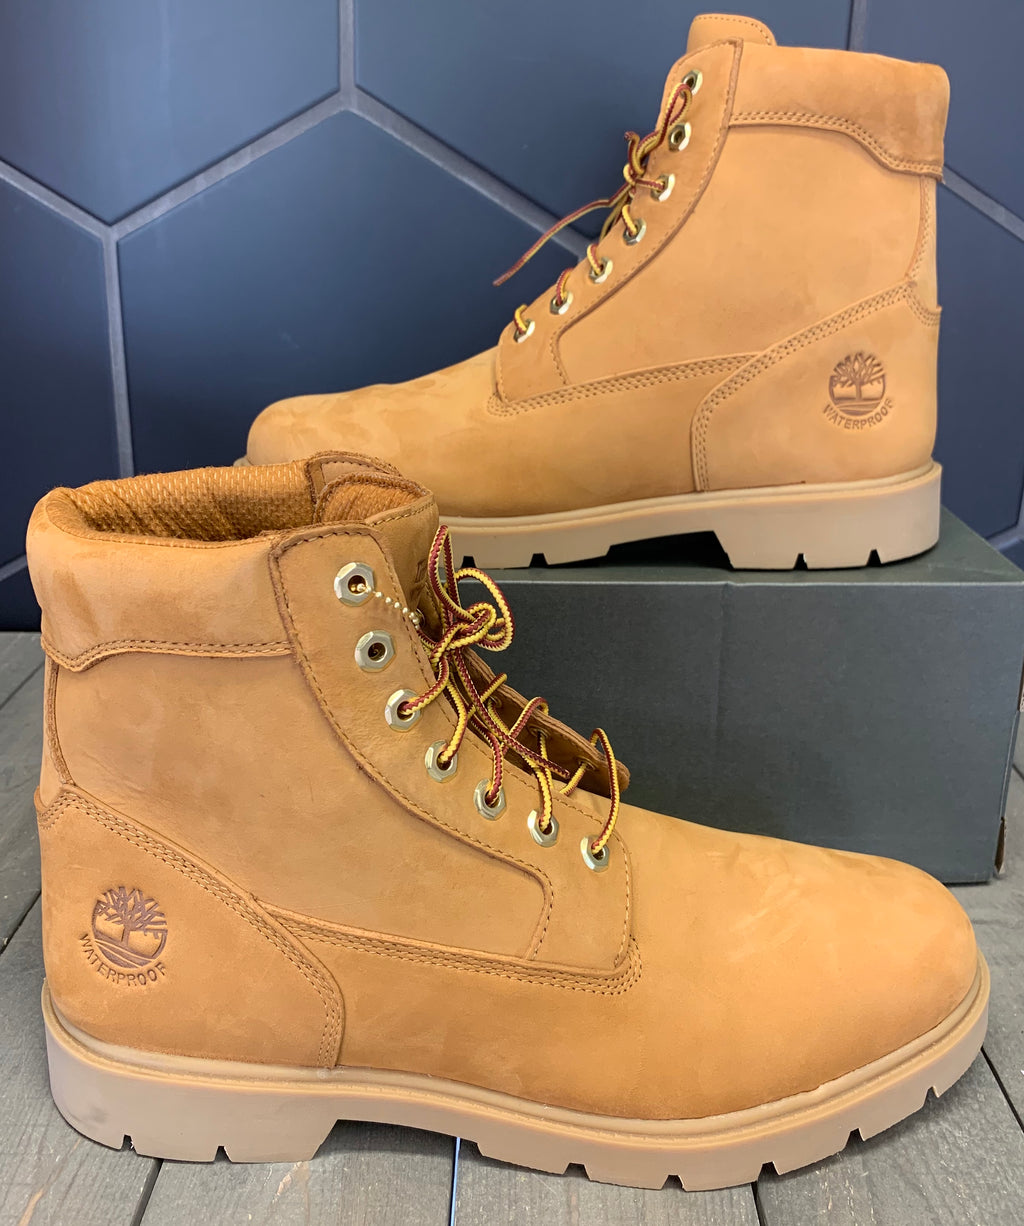 New W/ Box! Mens Timberland Classic 6 Inch Waterproof Boot Wheat Nubuck Size 11